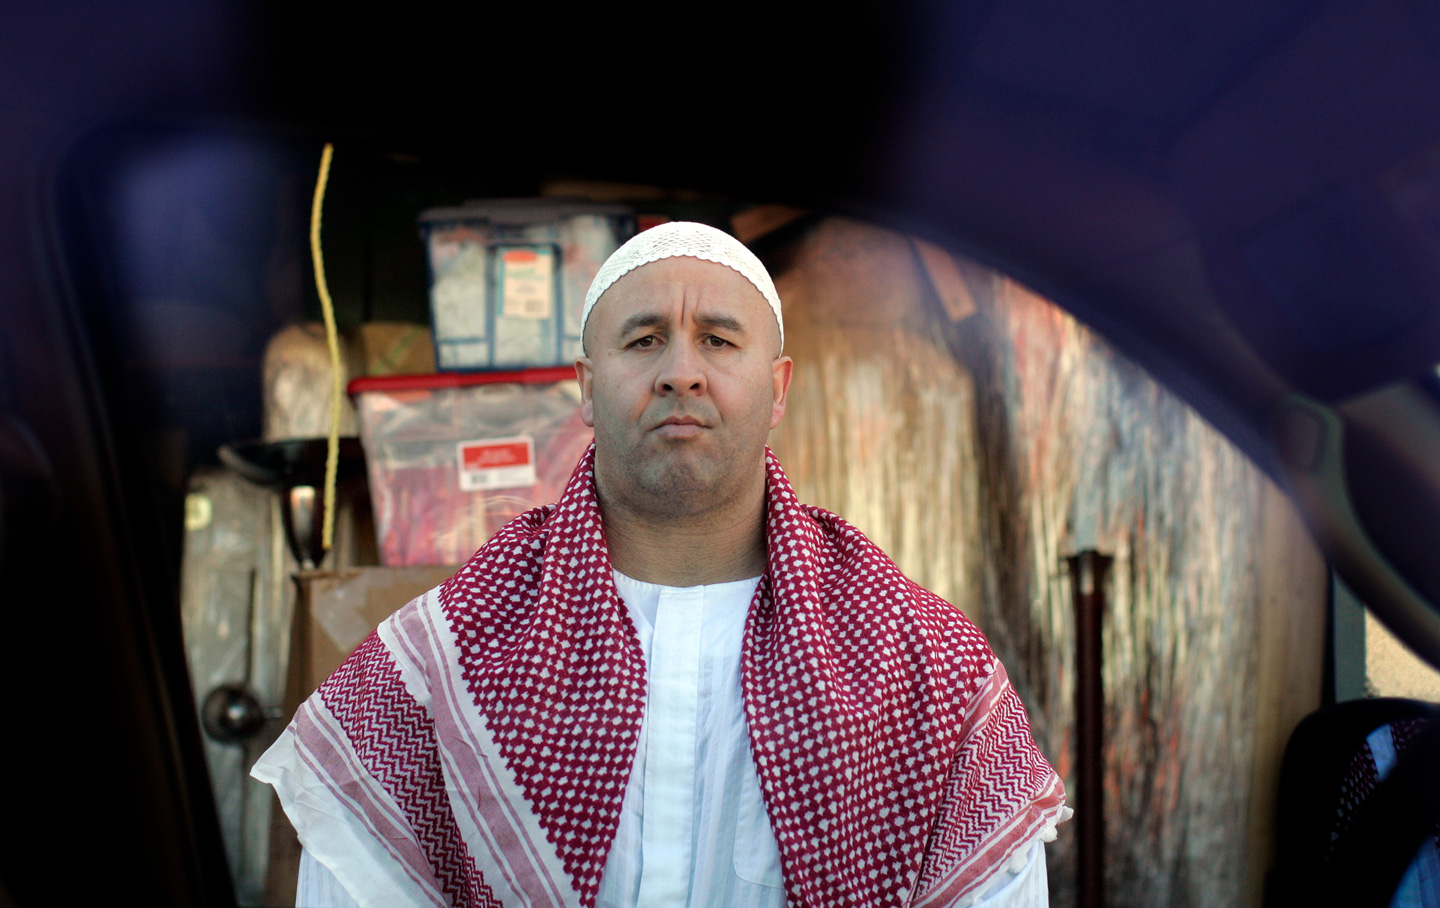 Dressed in his undercover Islamic clothing, Craig Monteilh was recruited by the FBI to spy on Muslims.  (Photo by Gina Ferazzi/Los Angeles Times via Getty Images)